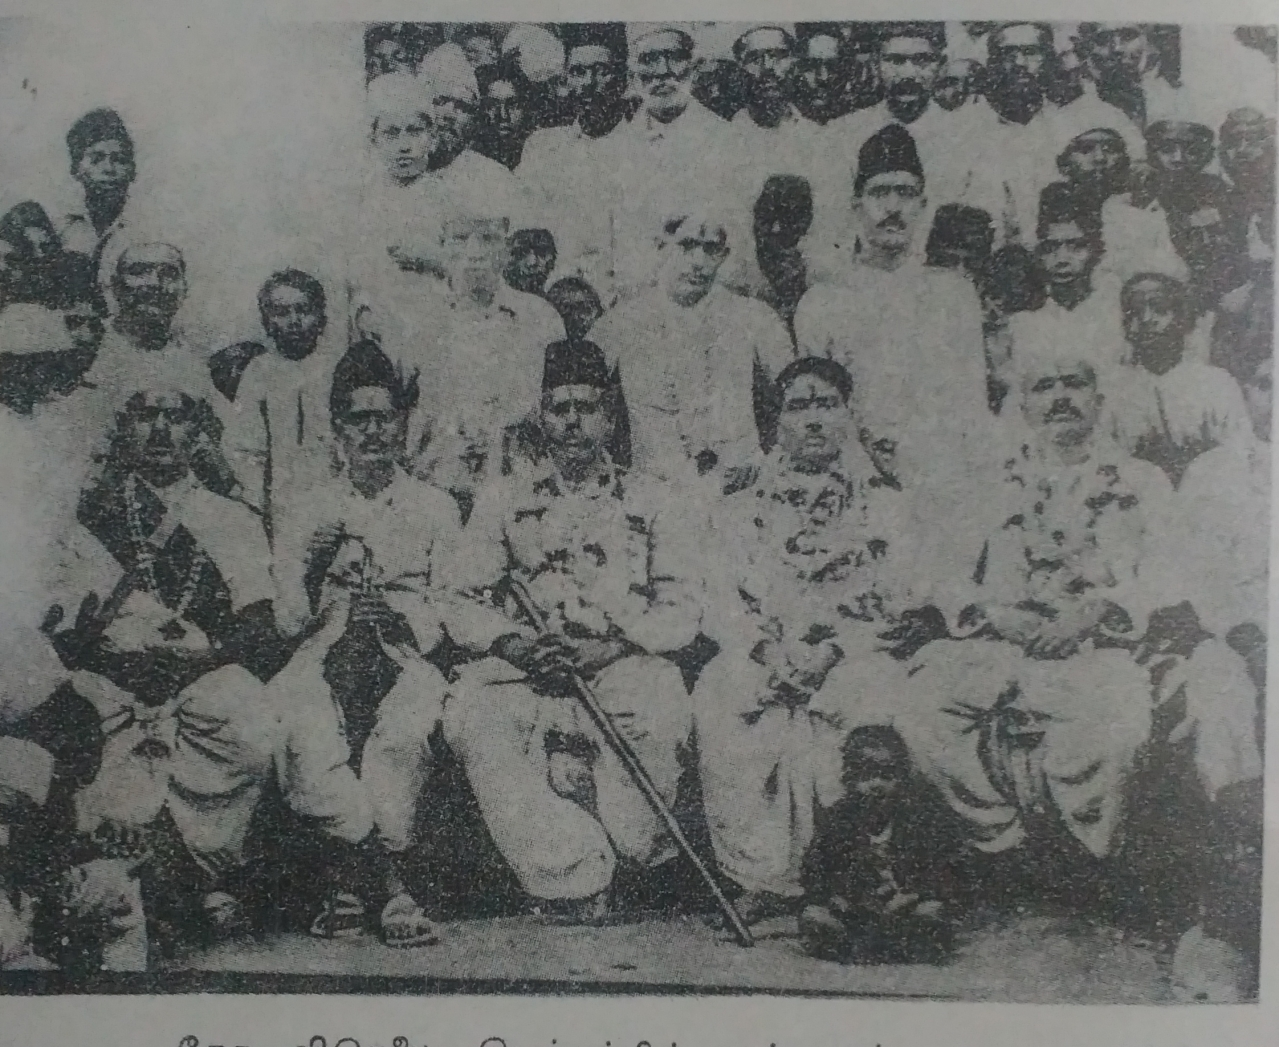 Dr Hedgewar participating in the 1930 satyagraha against the British